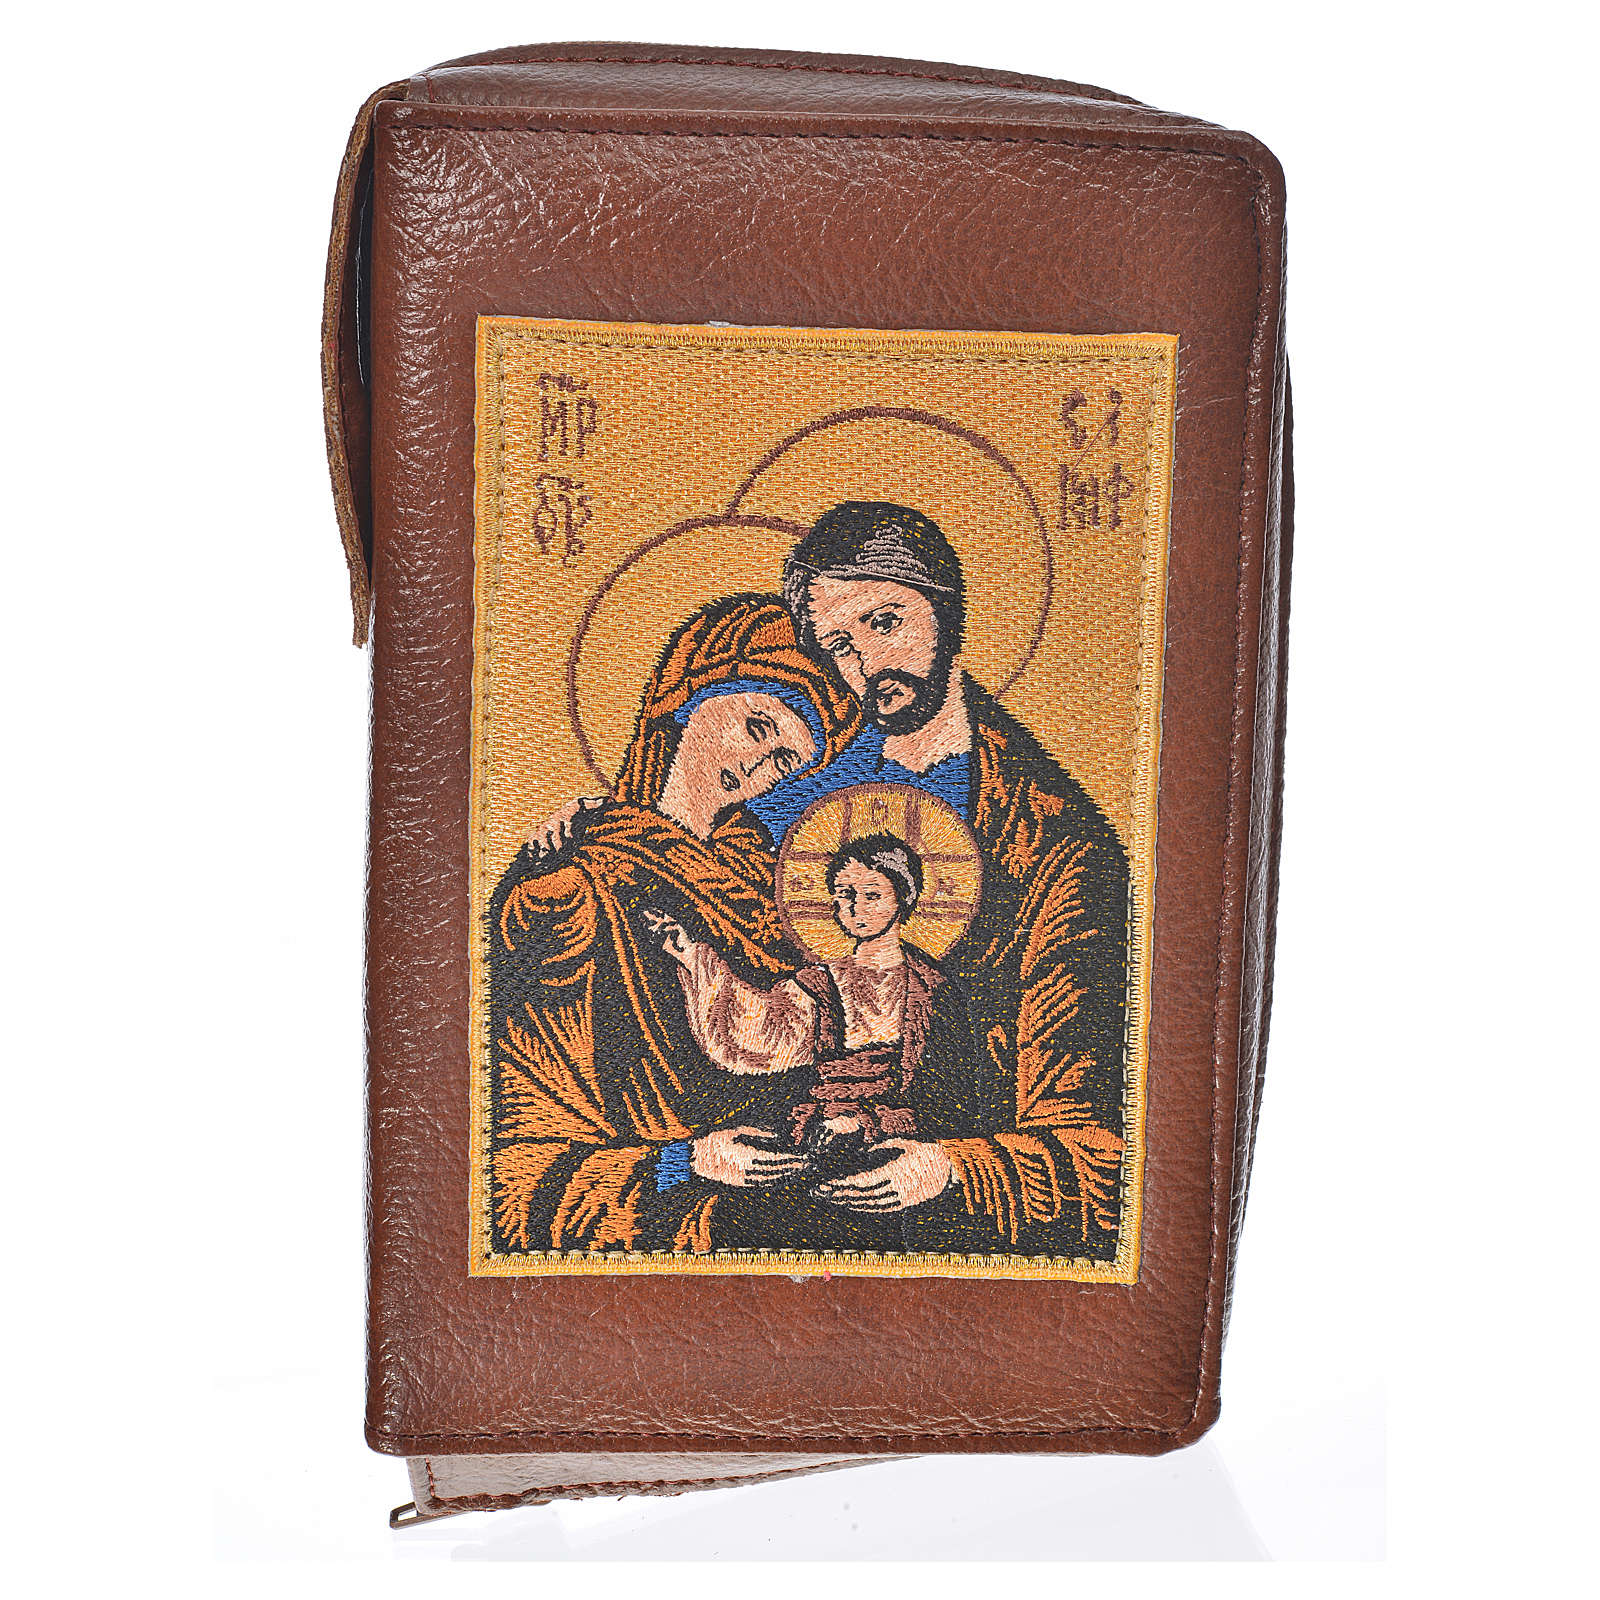 Hardcover New Jerusalem Bible in bonded leather with image of Holy Family 4